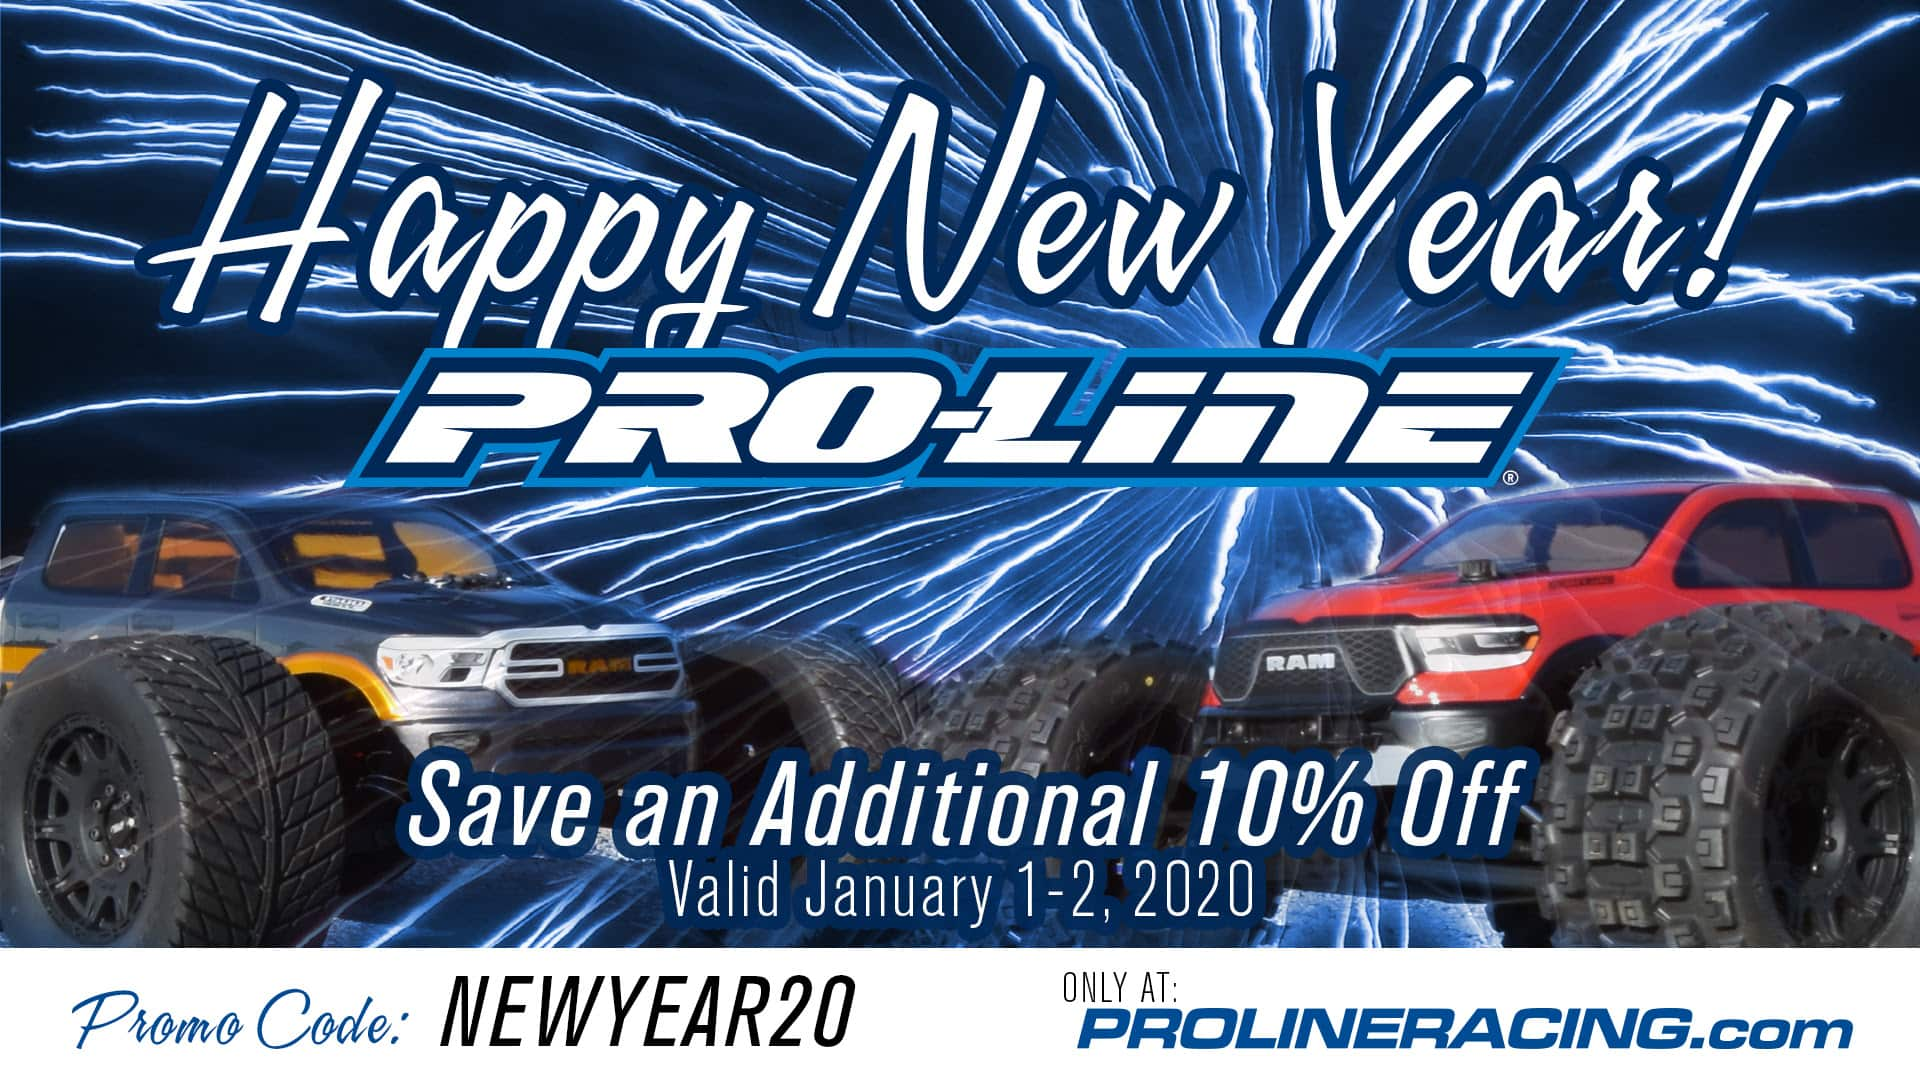 Ring in the New Year with 10% Off from Pro-Line